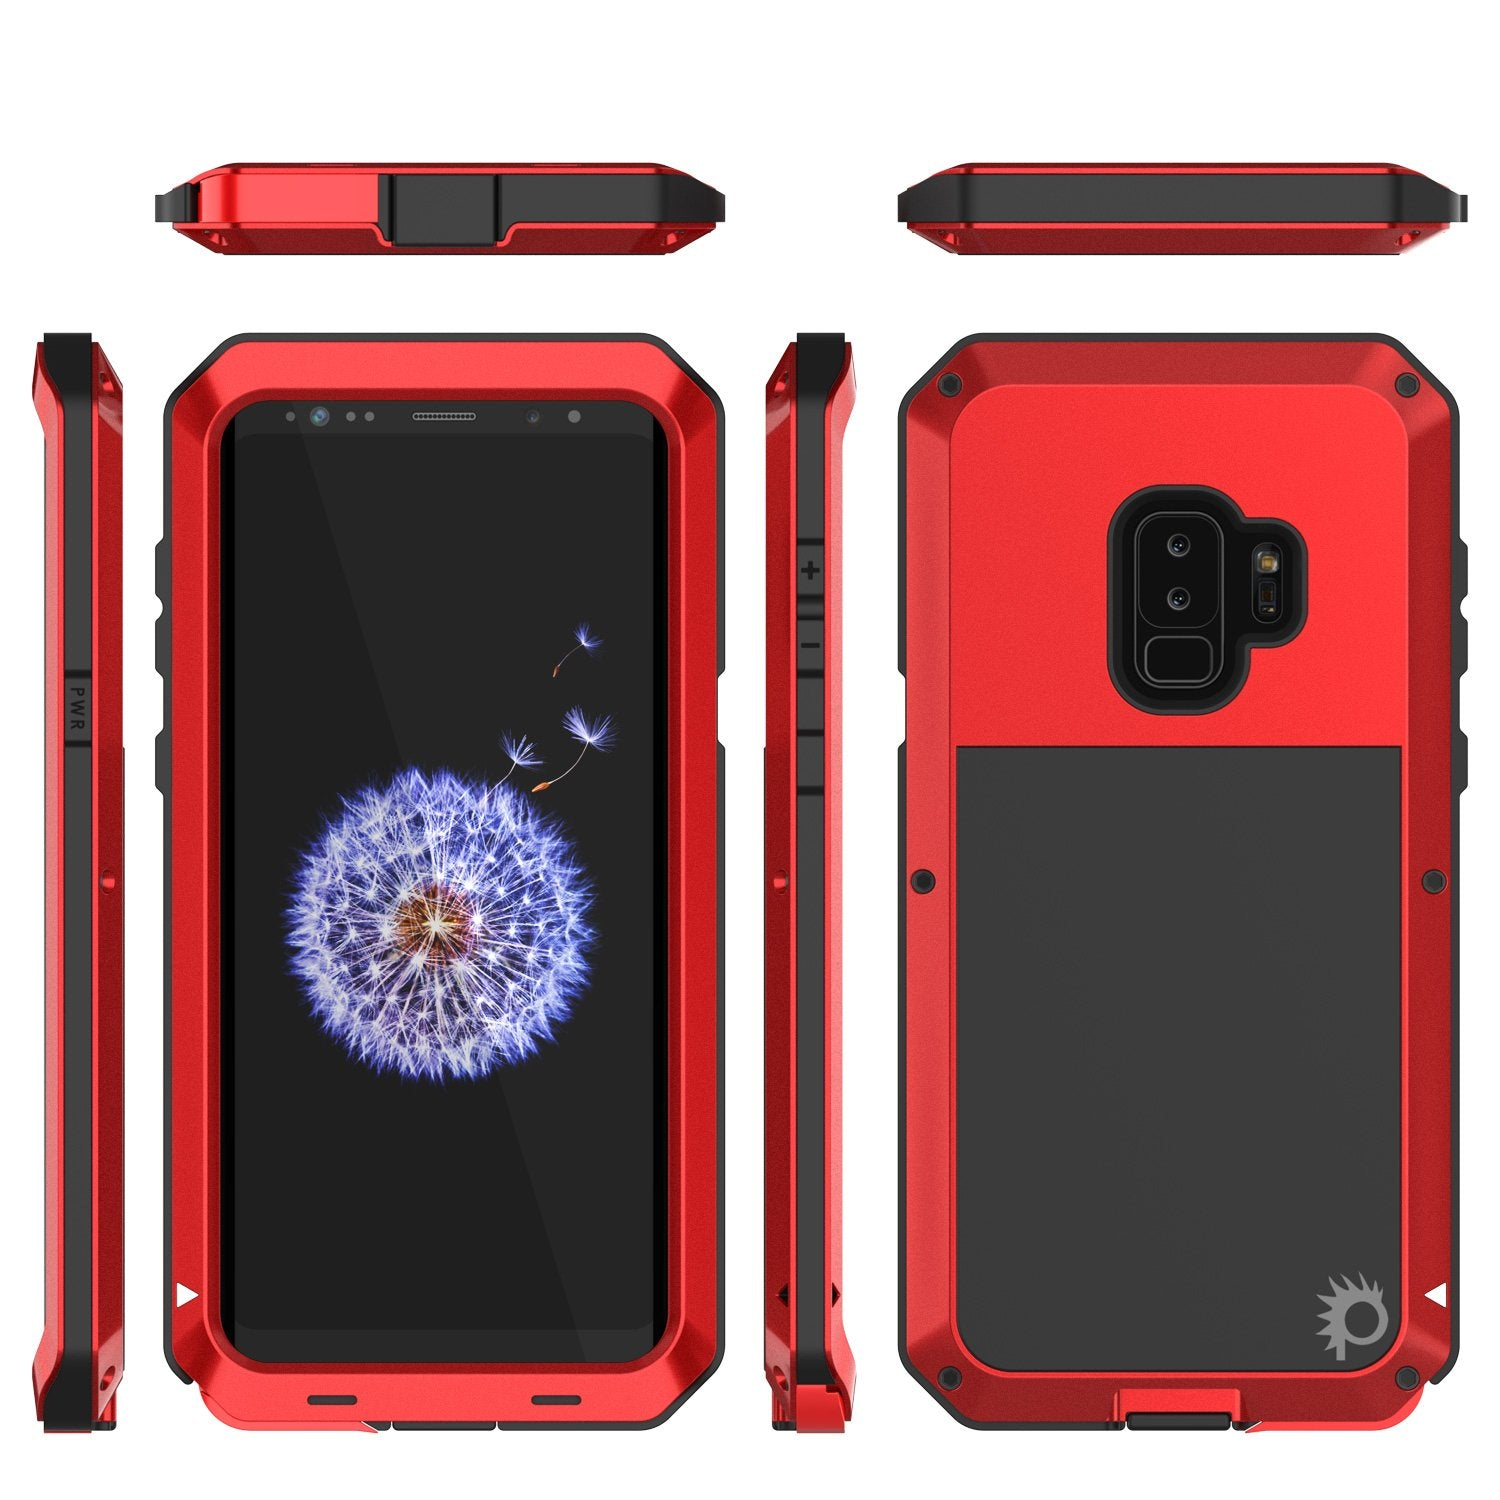 online store 0199d d35c8 Galaxy S9 Plus Metal Case, Heavy Duty Military Grade Rugged Case, Red